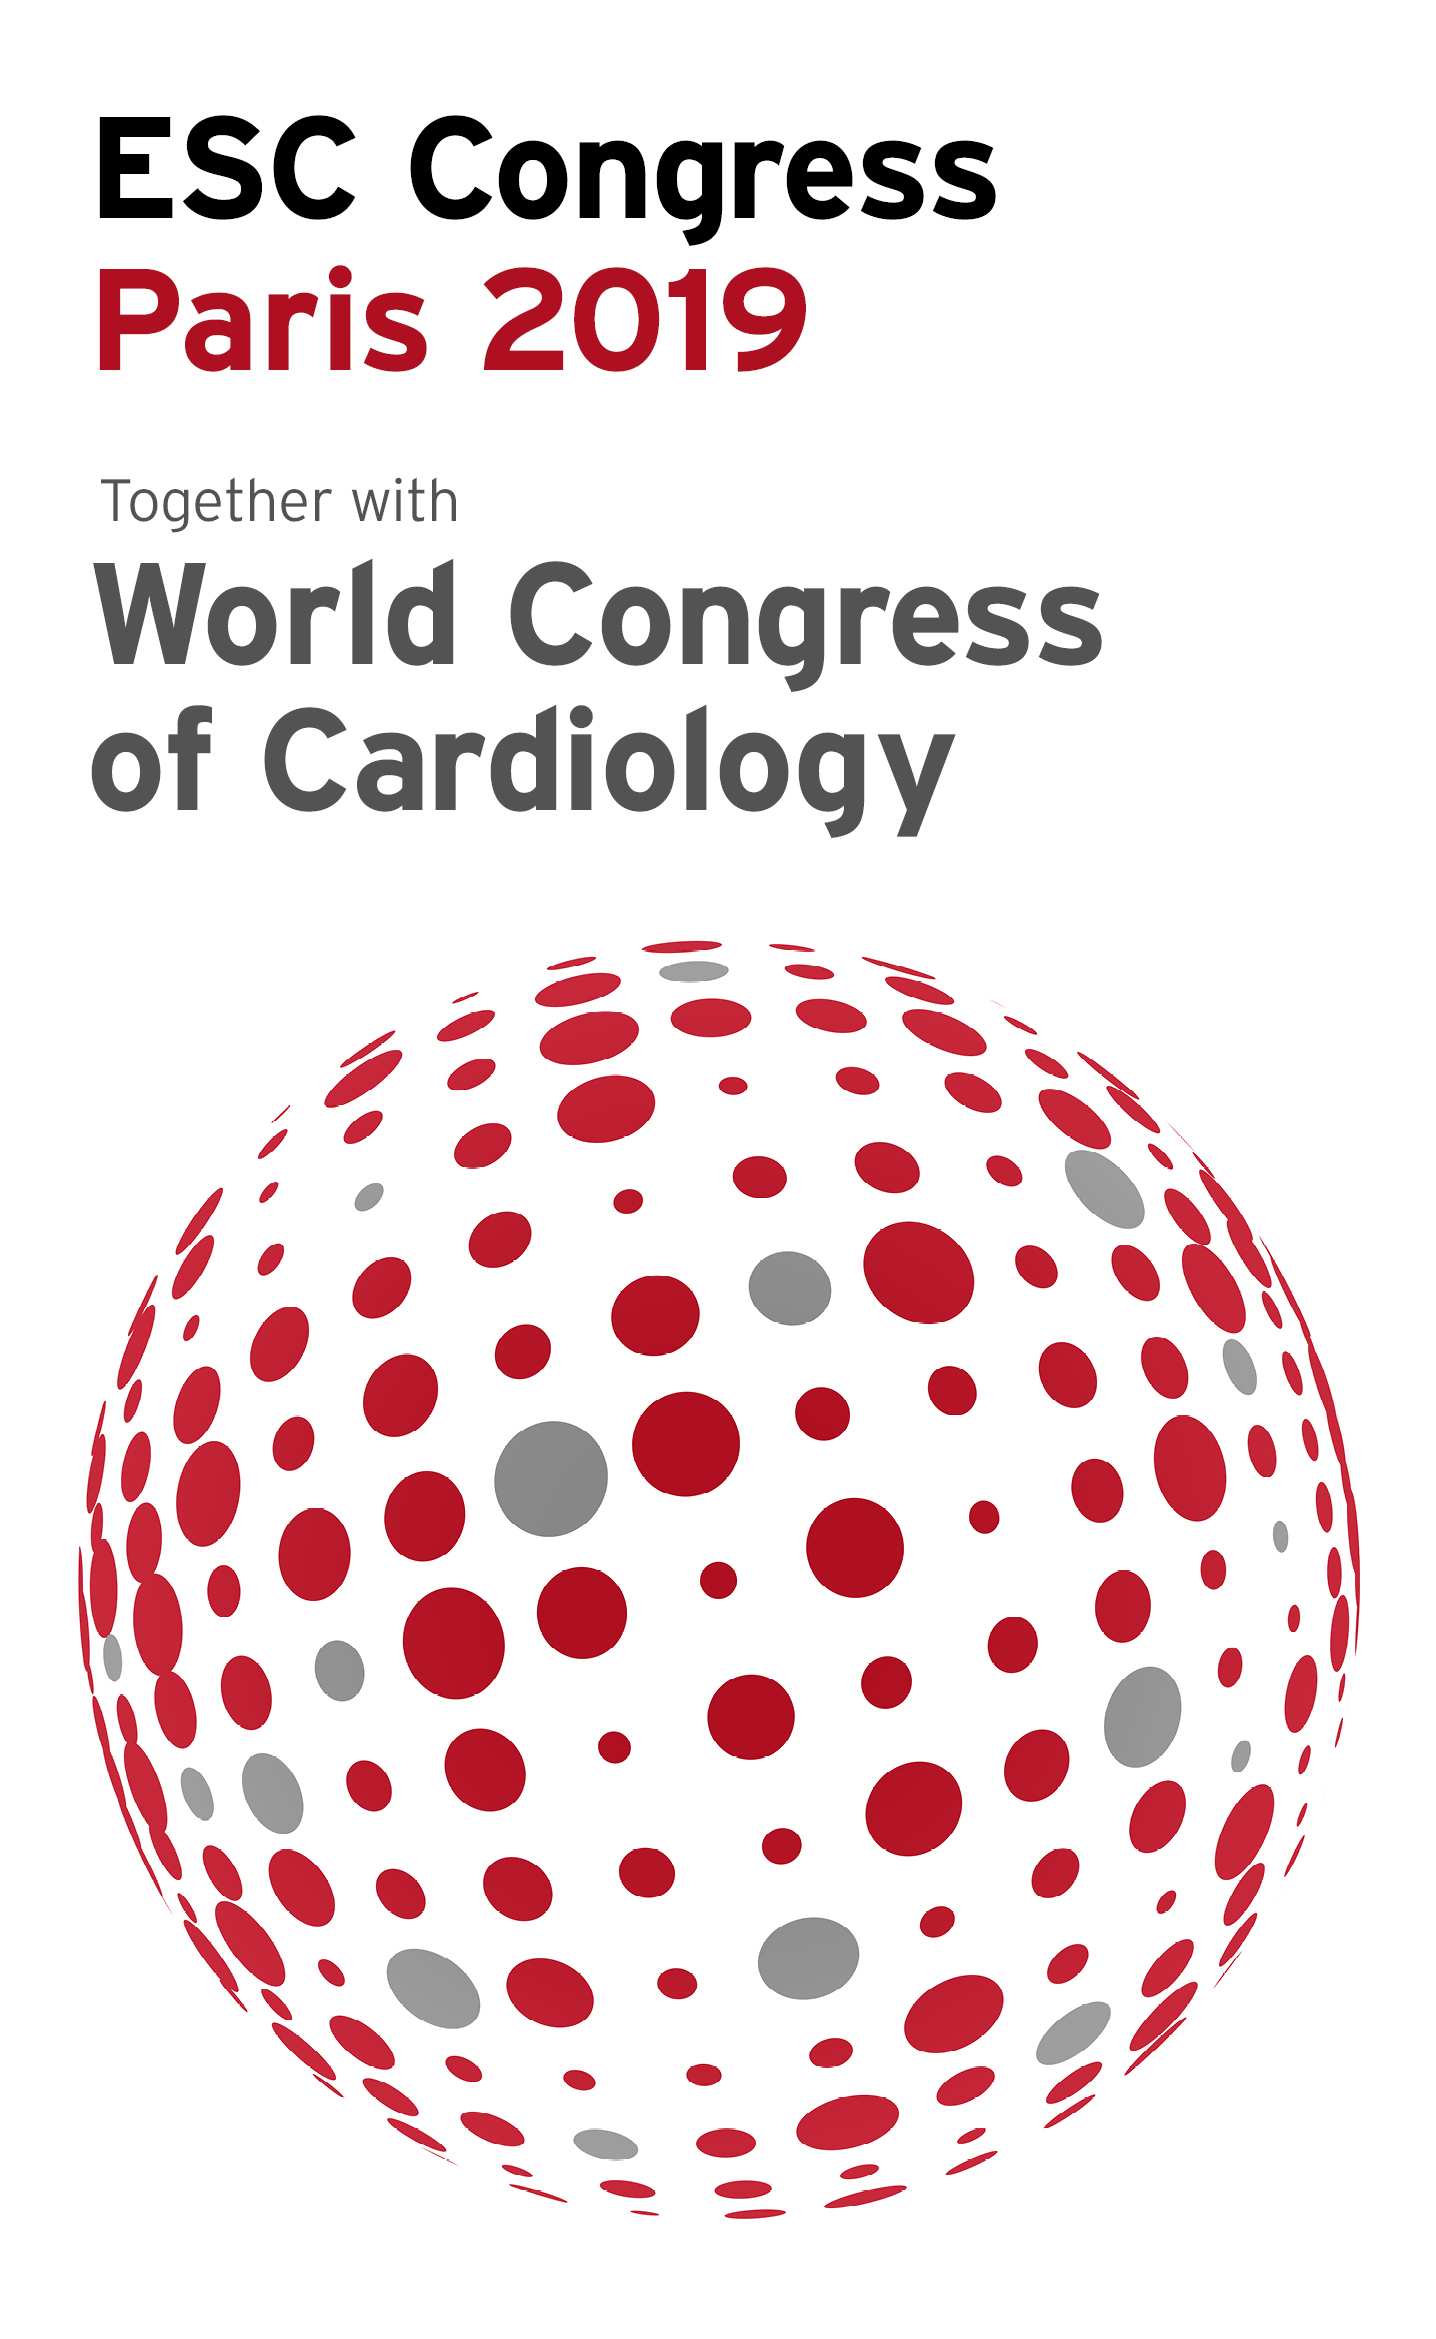 ESC European Society of Cardiology 2019 BJC British Journal of Cardiology congress report